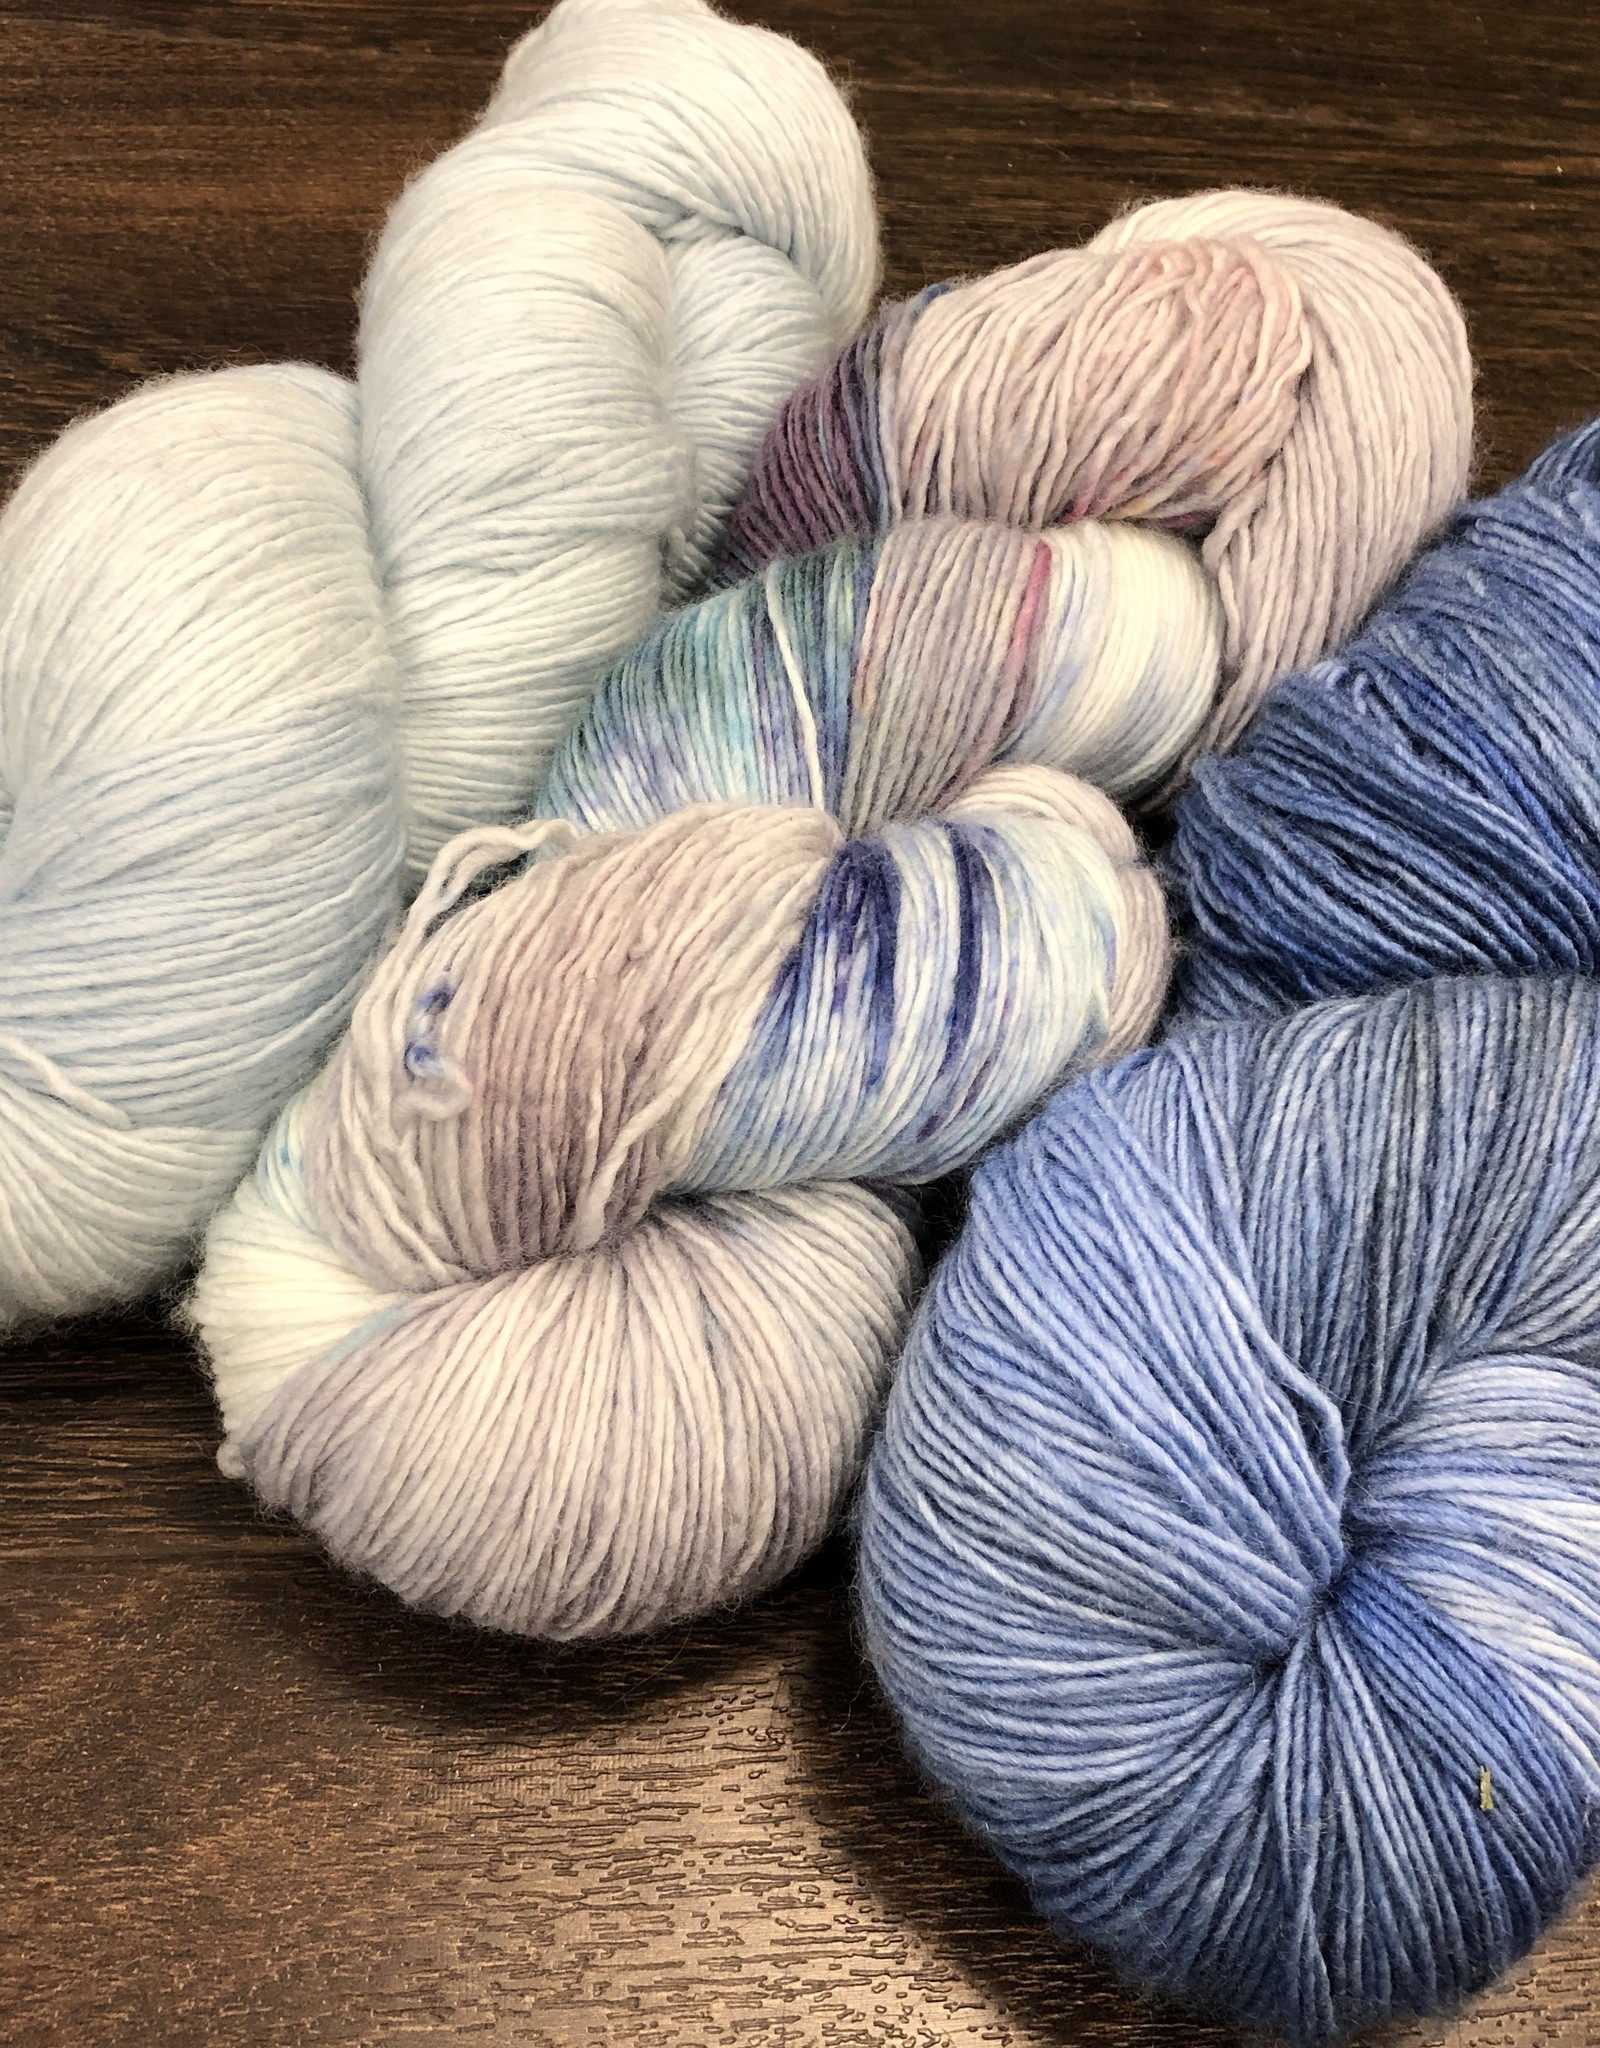 Yarn it & Haberdashery Mother's Day Bouquet - 3-skein set, 'In Honor of Her' Shawl